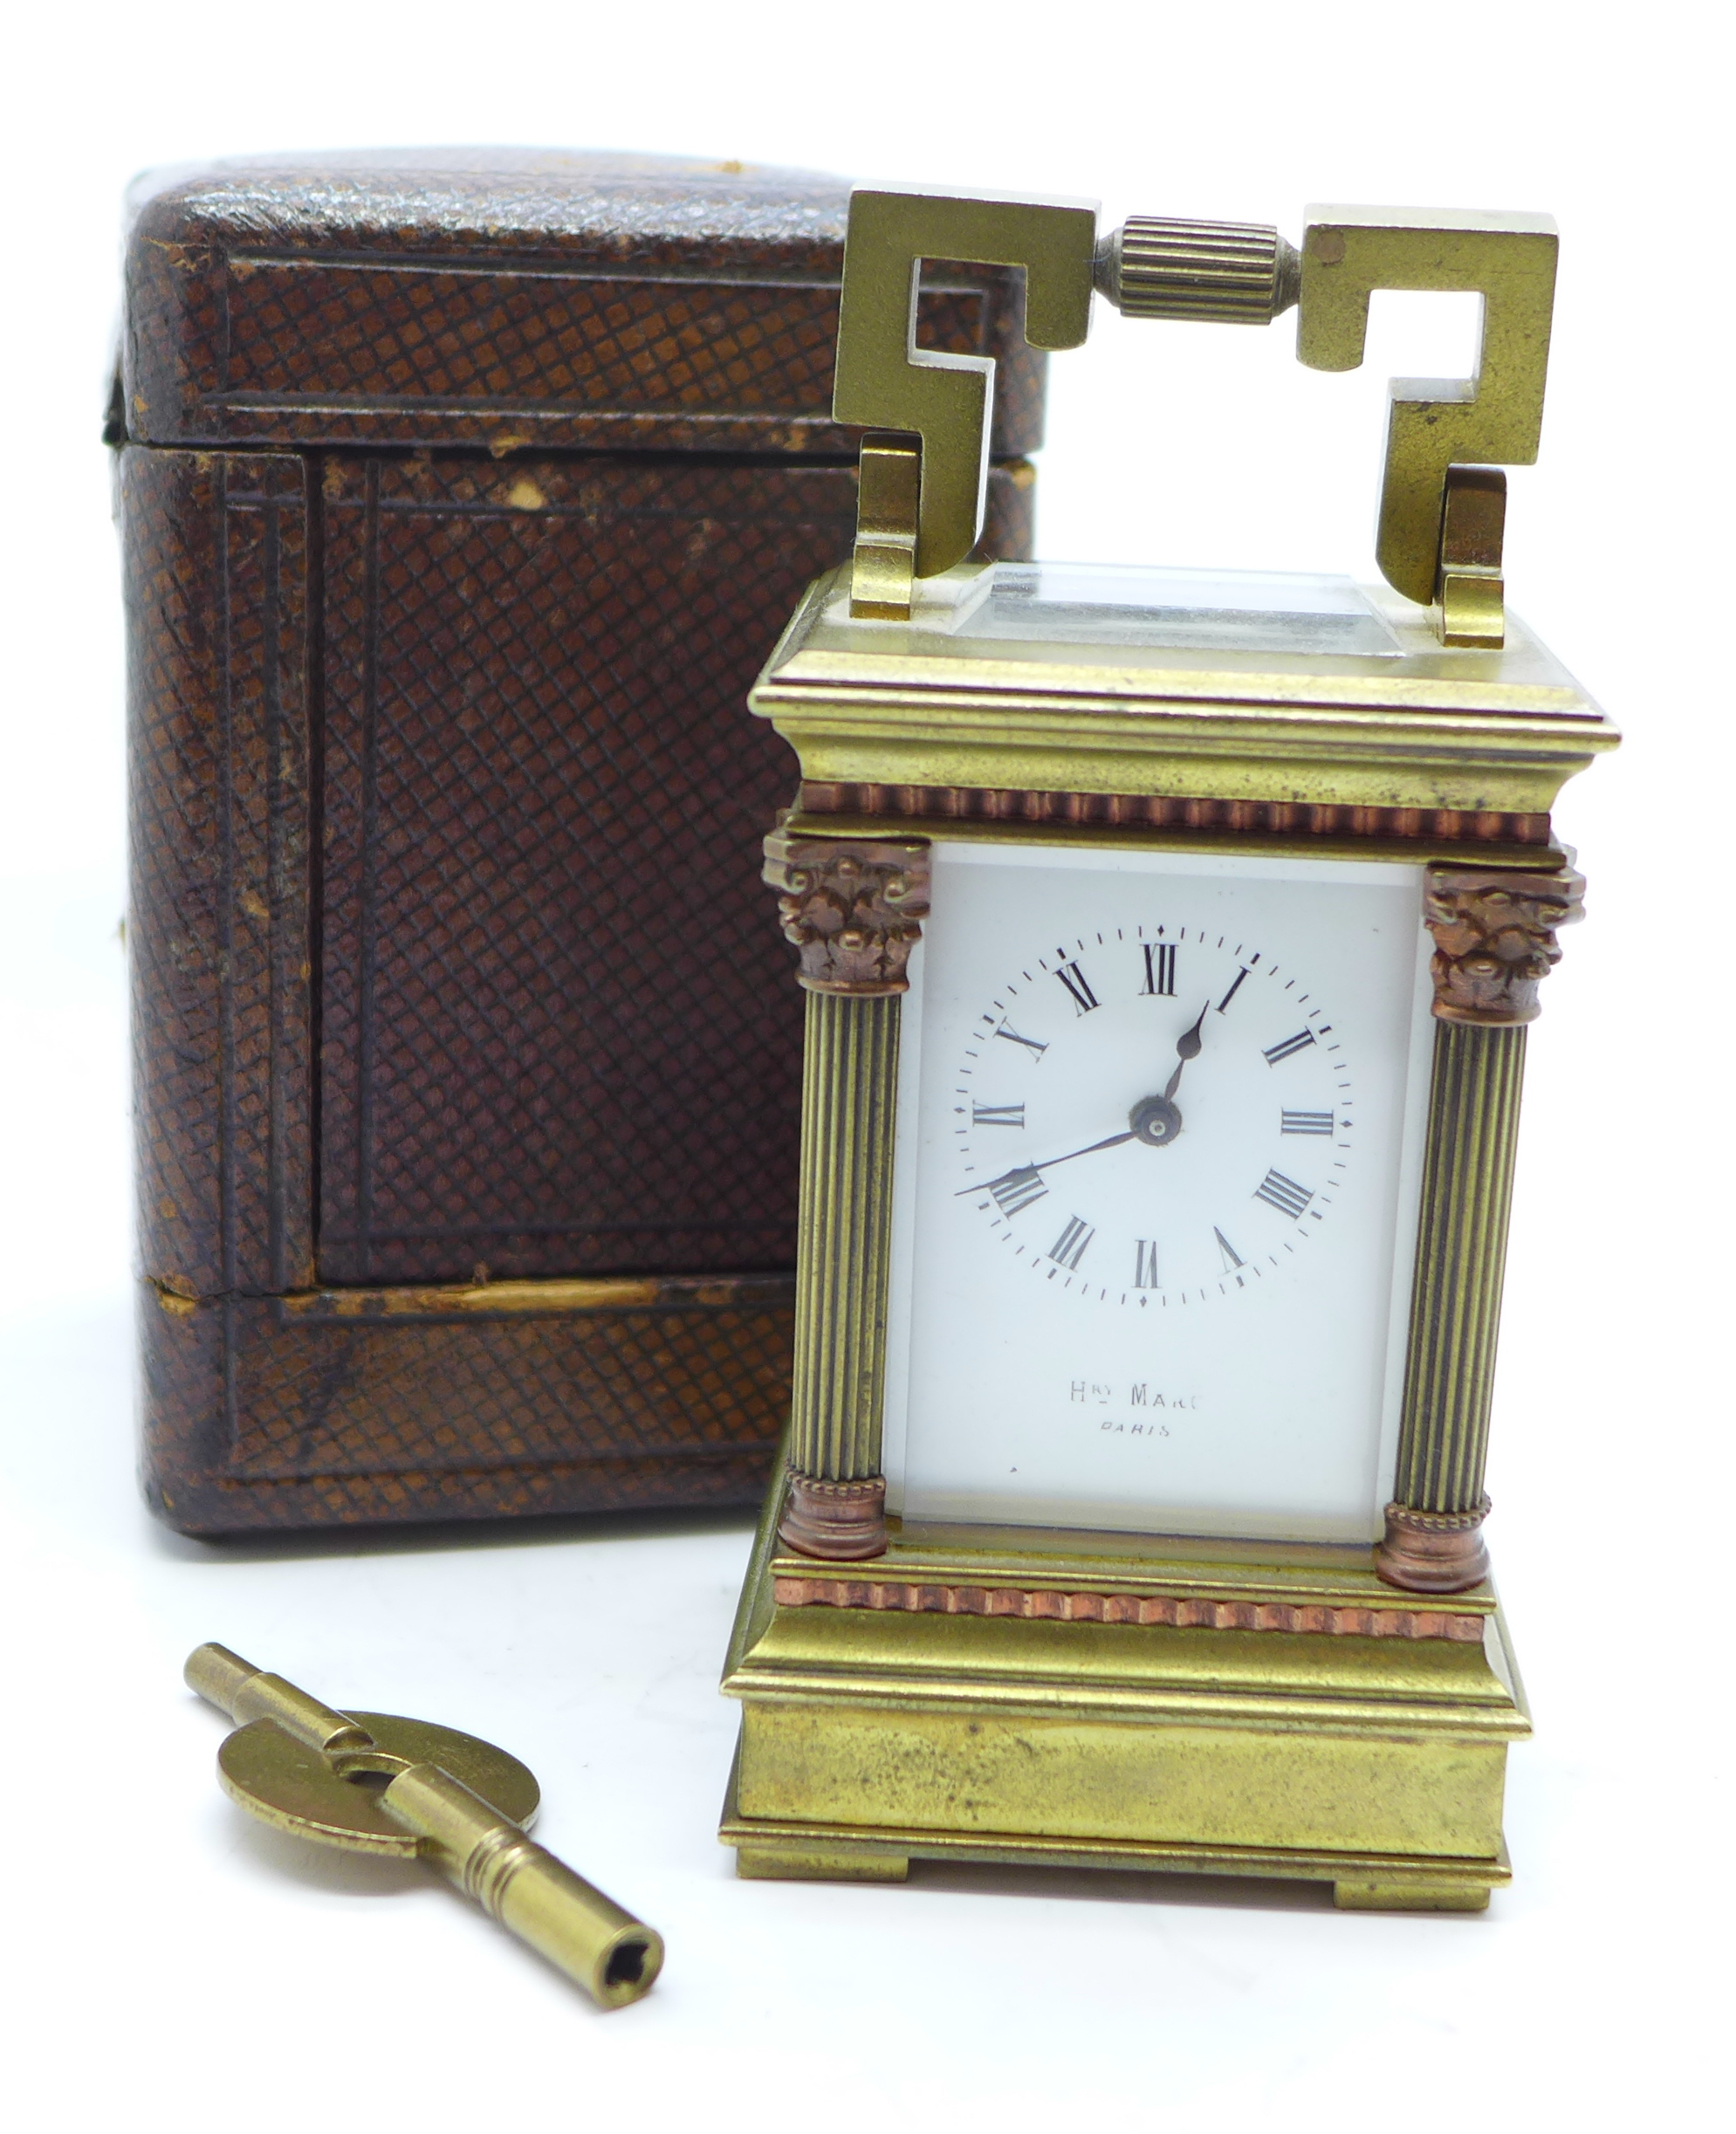 Lot 627 - A miniature French brass carriage clock with four Corinthian columns, in brown Morocco leather case,